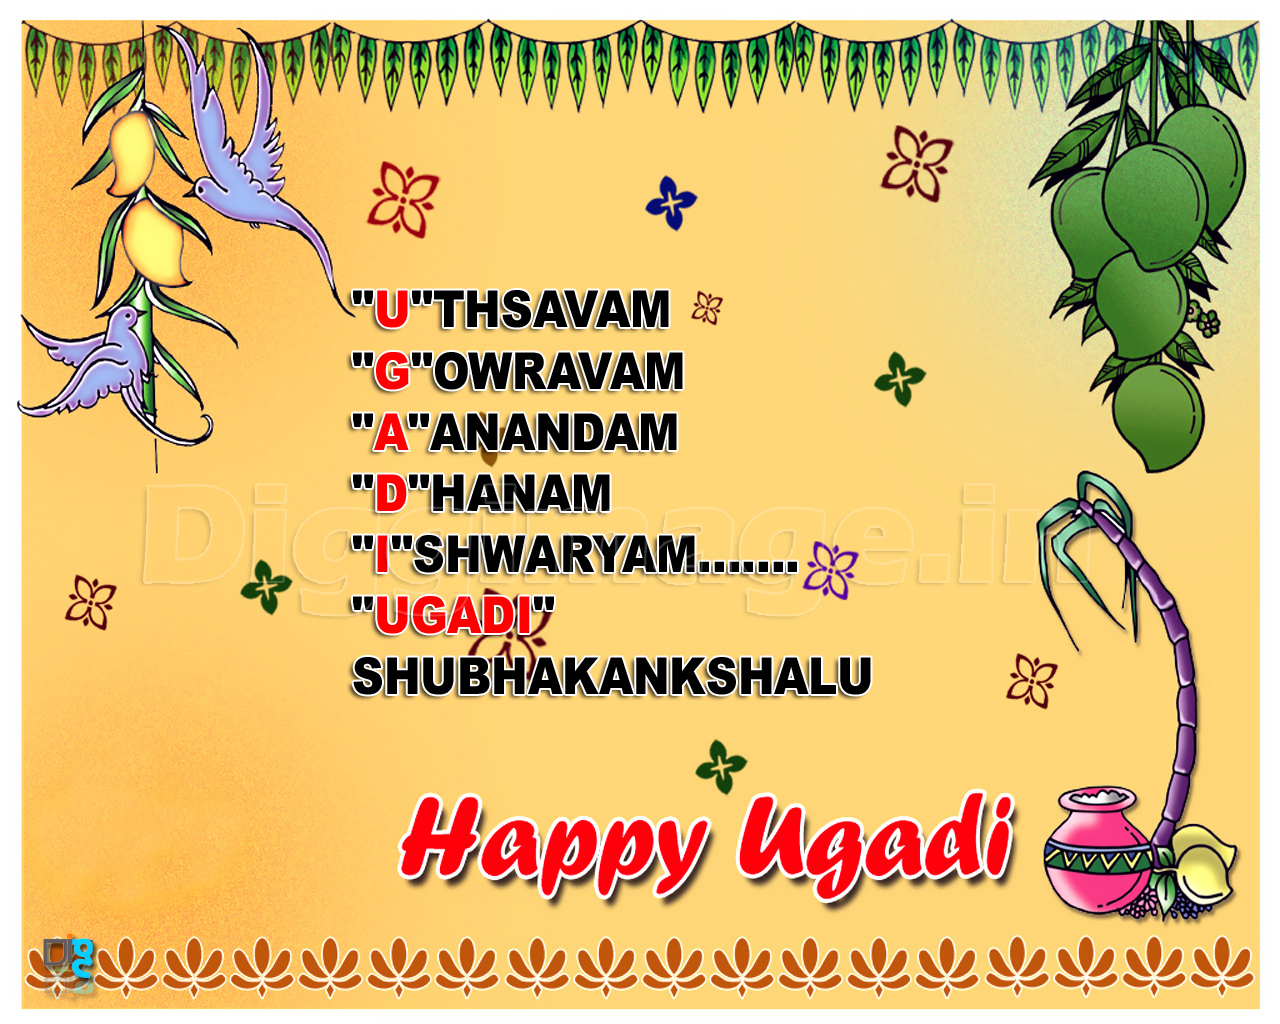 New latest happy ugadi sms text messages greetings wishes in ugadi wishes sms happy ugadi pachadi messages ugadi wishes telugu ugadi wishes photos ugadi wishes in telugu language kristyandbryce Gallery